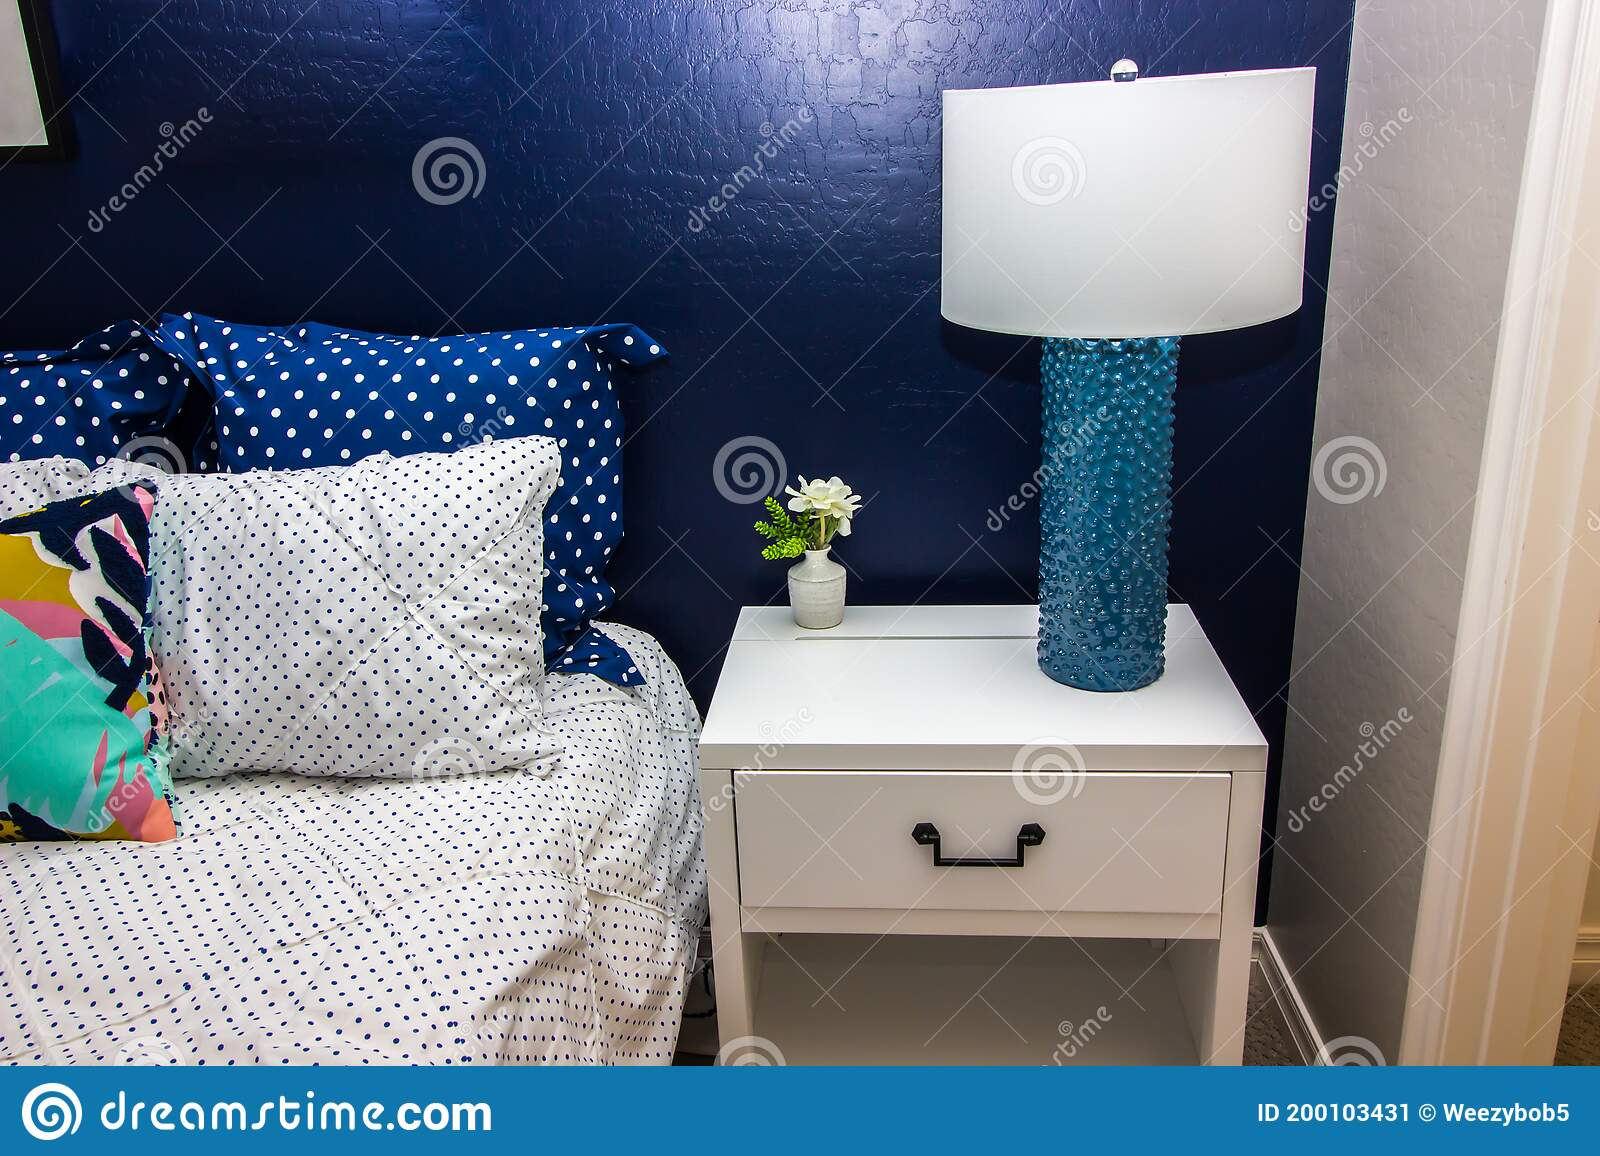 Bedroom With Nightstand Lamp Blue Accent Wall Stock Image Image Of Textured Wall 200103431